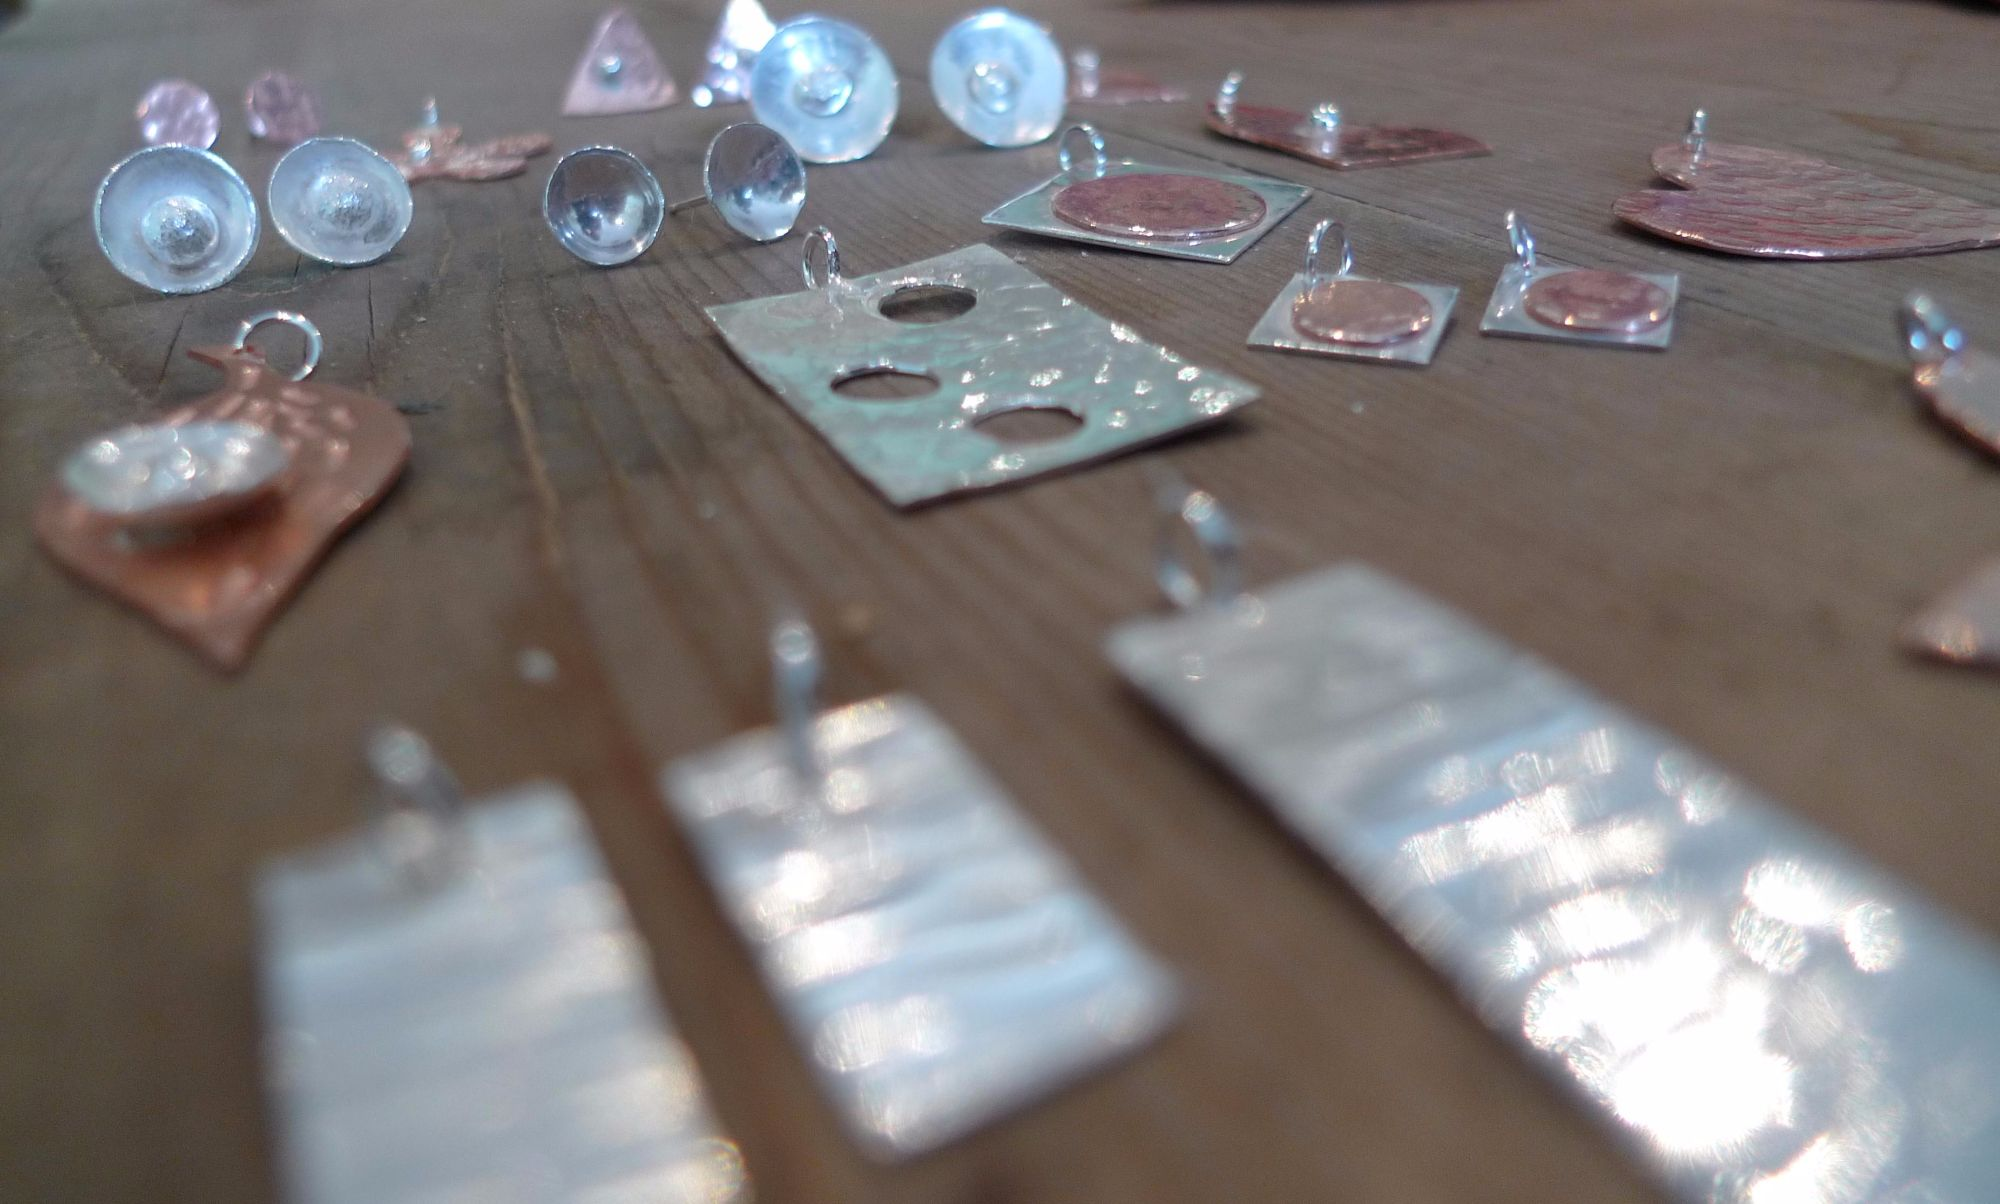 Silver Earrings and Pendant Workshop - Earrings and Pendants